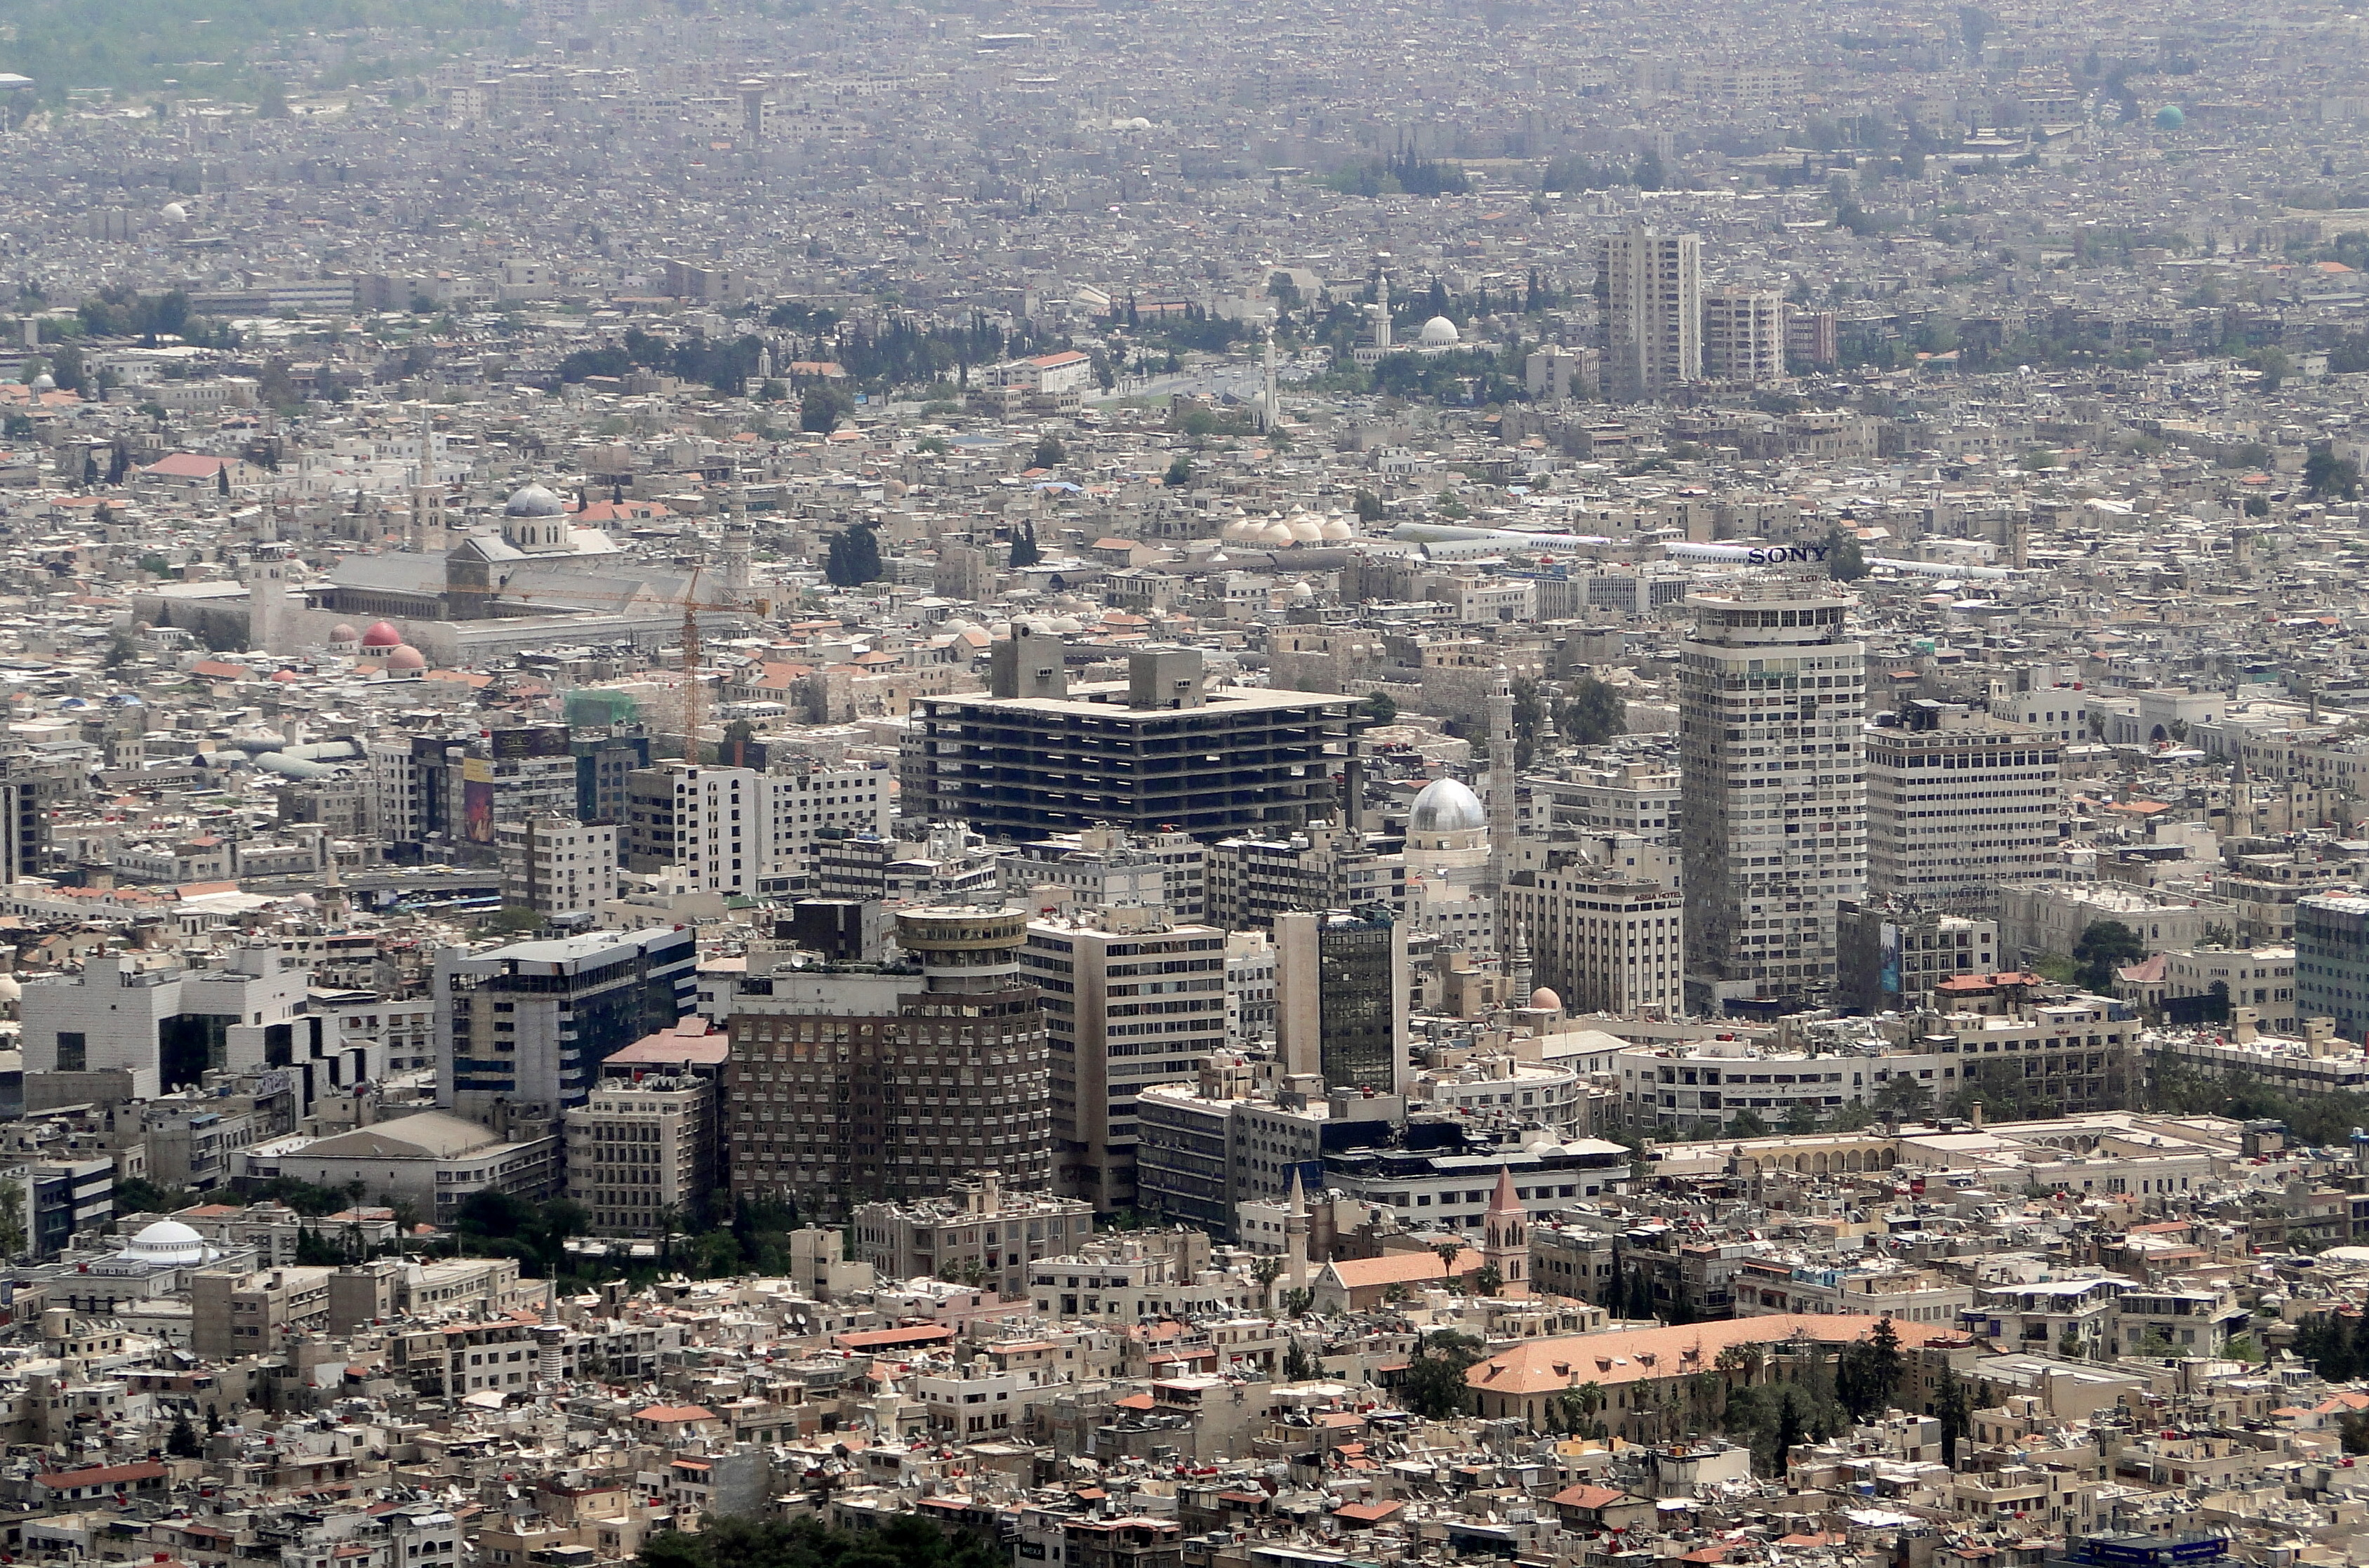 damascus - oldest capital in the world